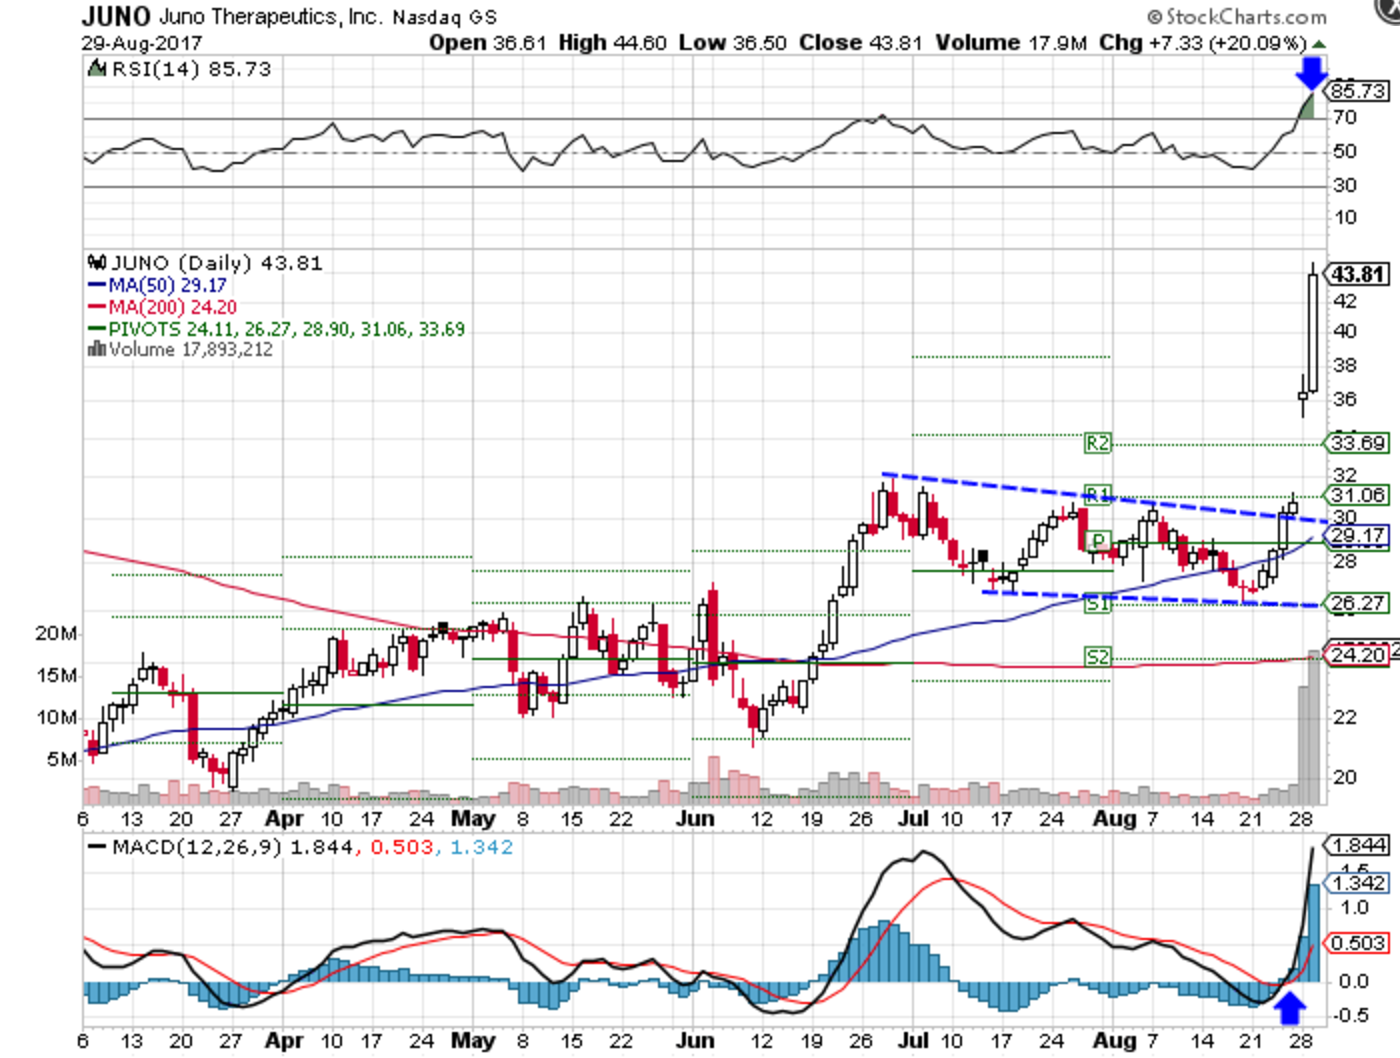 Technical chart showing the performance of Juno Therapeutics, Inc. (JUNO) stock